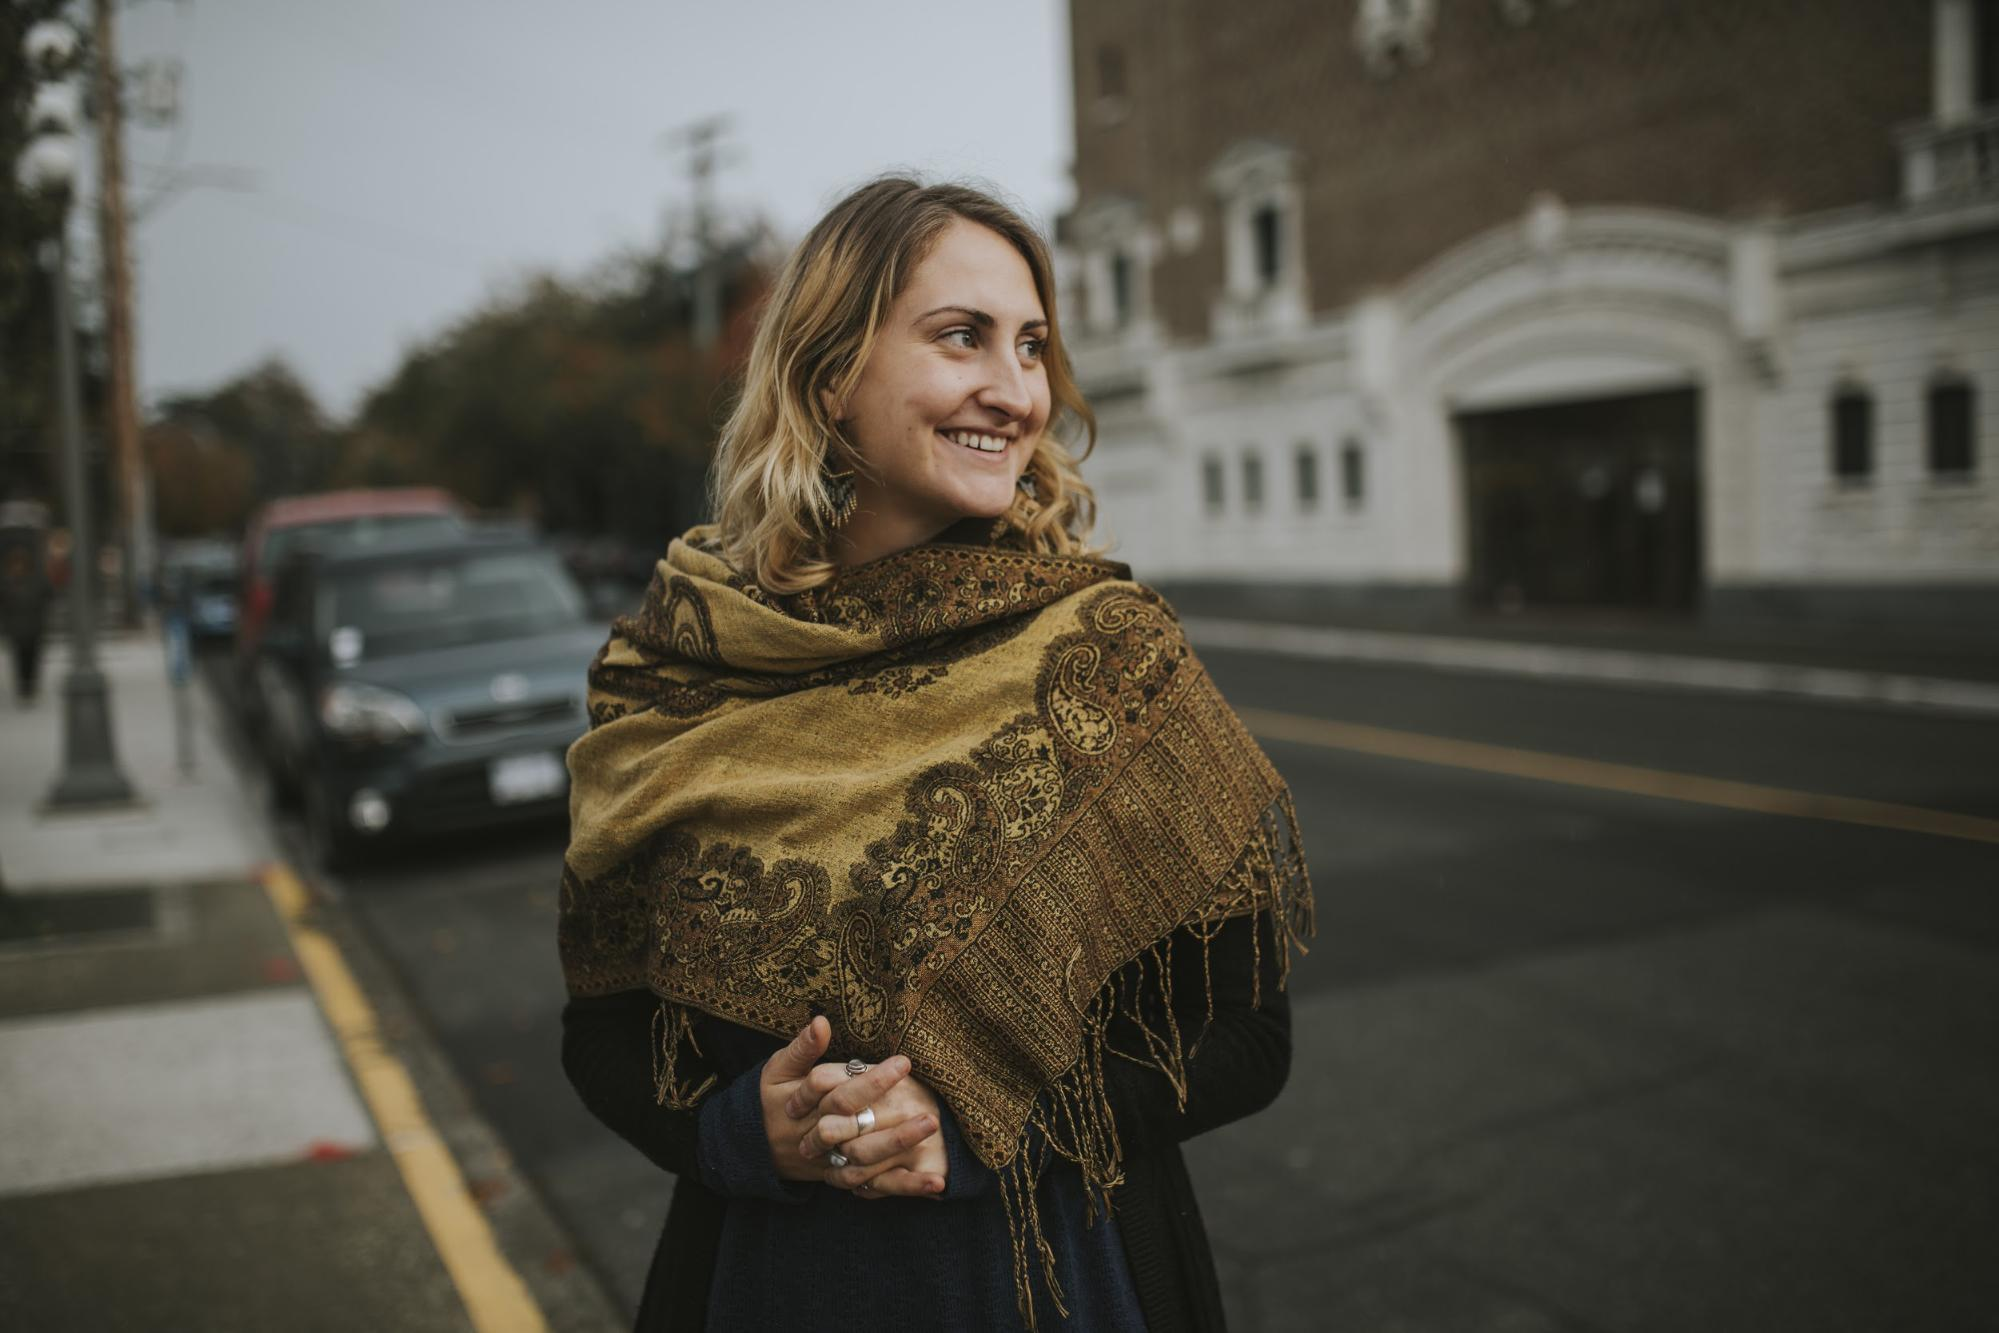 woman with scarf smiling away from camera on street